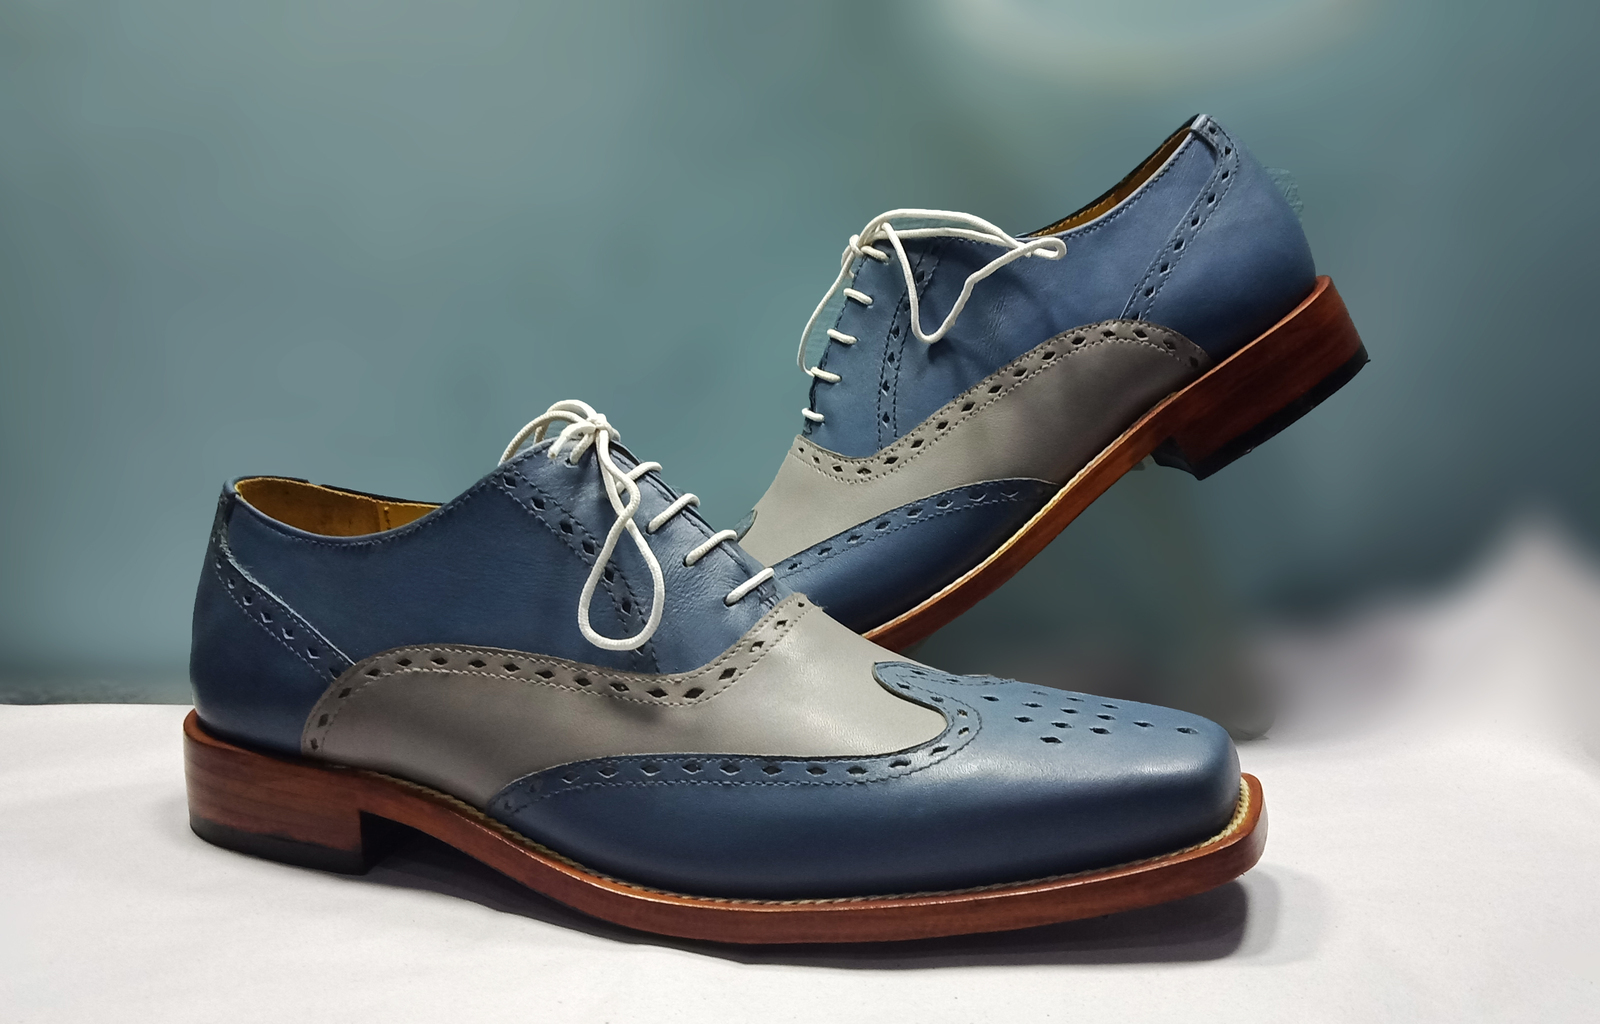 9bd4d9a1d99ca Handmade Gray Blue Wingtip Brogue Shoe, Men's Lace Up Leather Oxford Formal  Shoe from LeathersPlanet